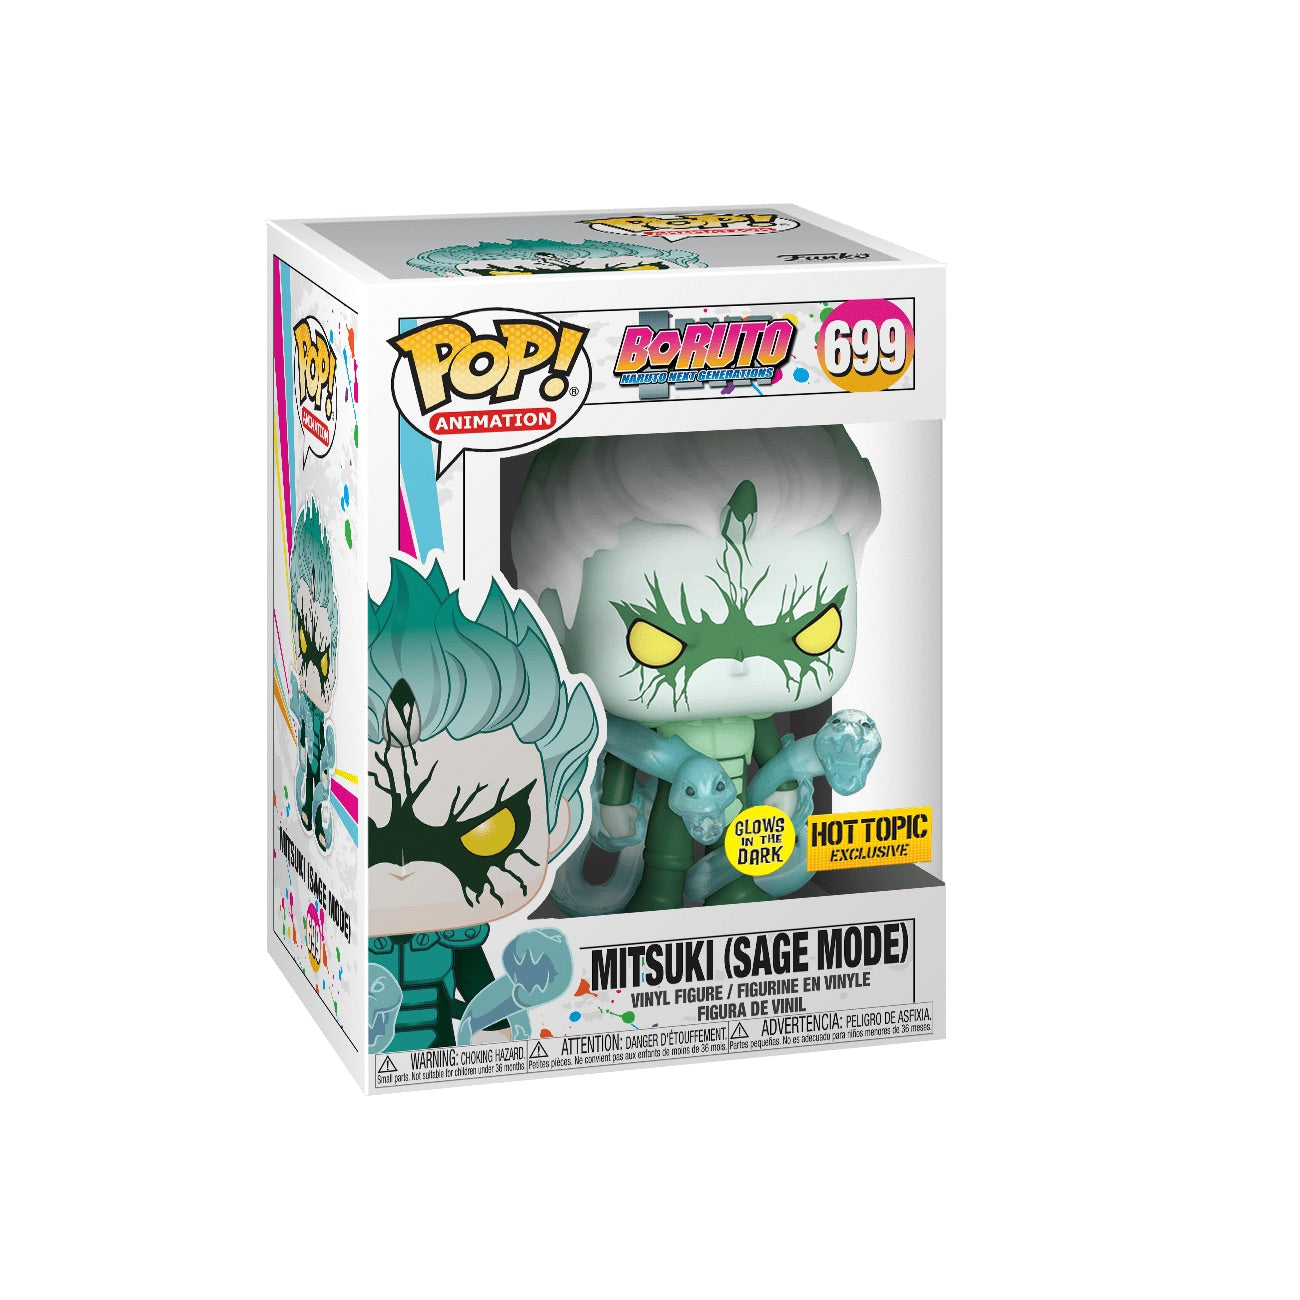 Boruto Naruto Next Generations Mitsuki (Sage Mode) GITD Exclusive